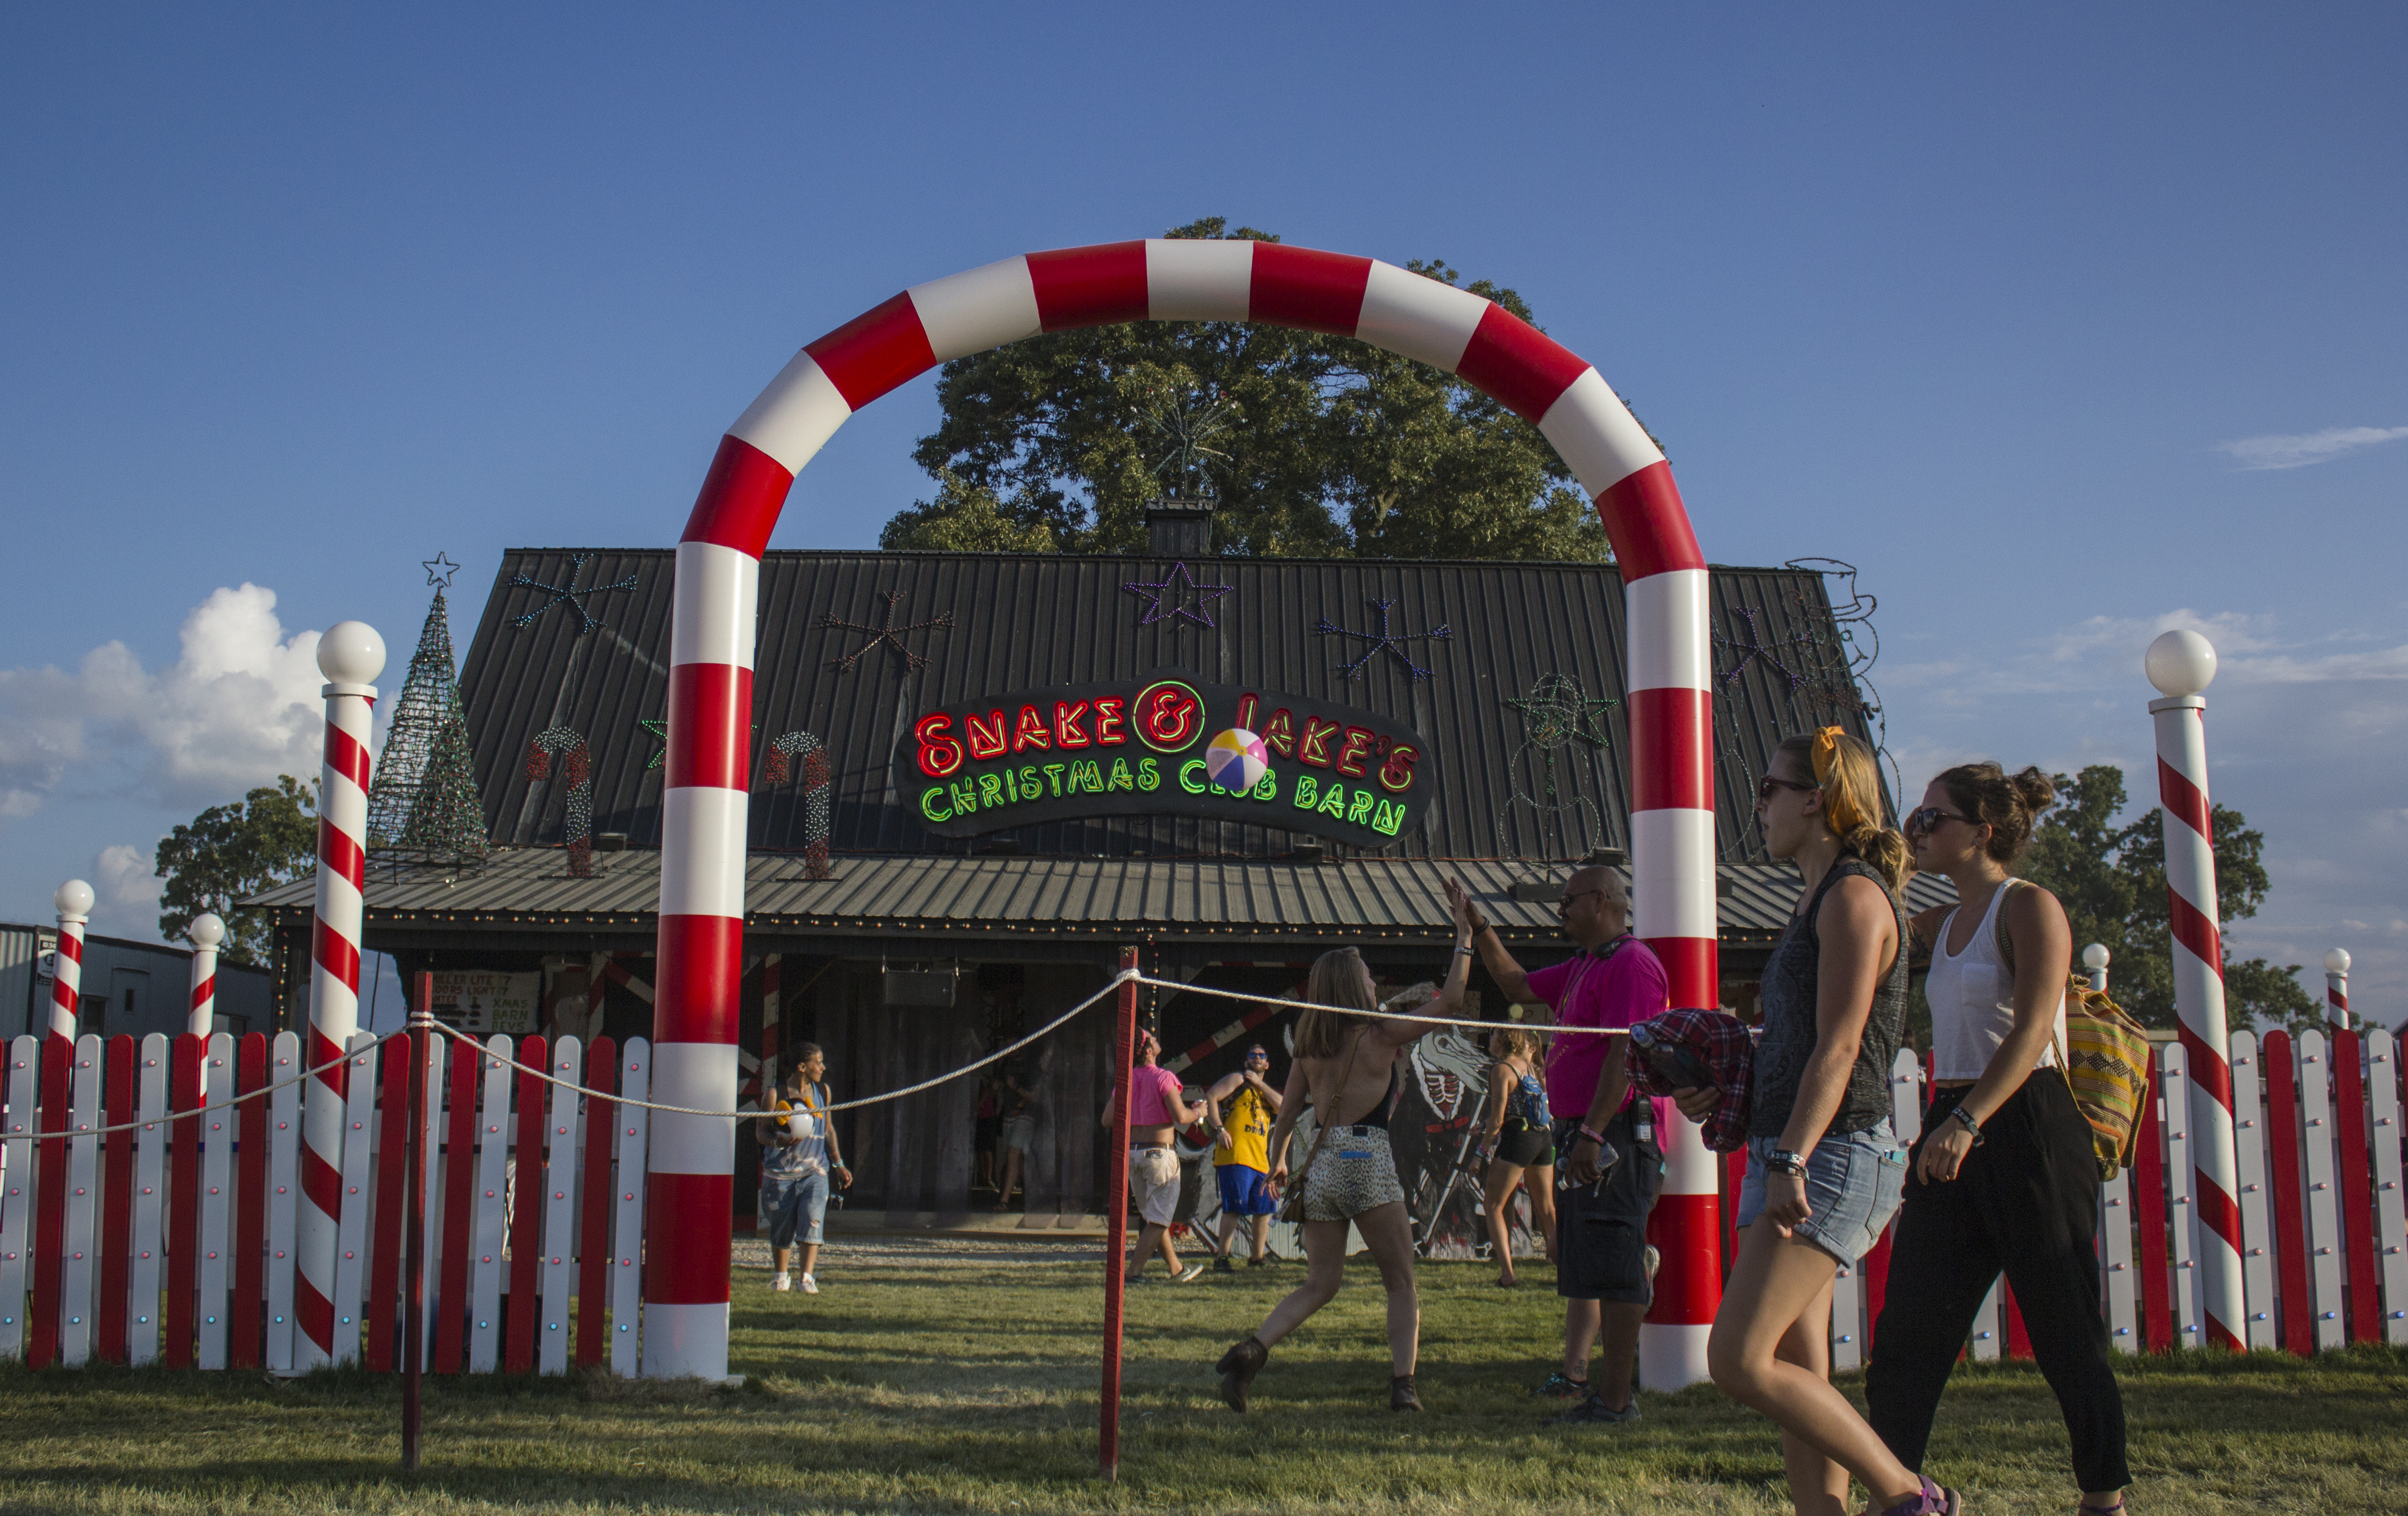 Snake & Jakes Christmas Club Barn at the Bonnaroo Music & Arts Festival in Manchester, Tennessee on 06/12/15. Photo by: Matthew McGuire.